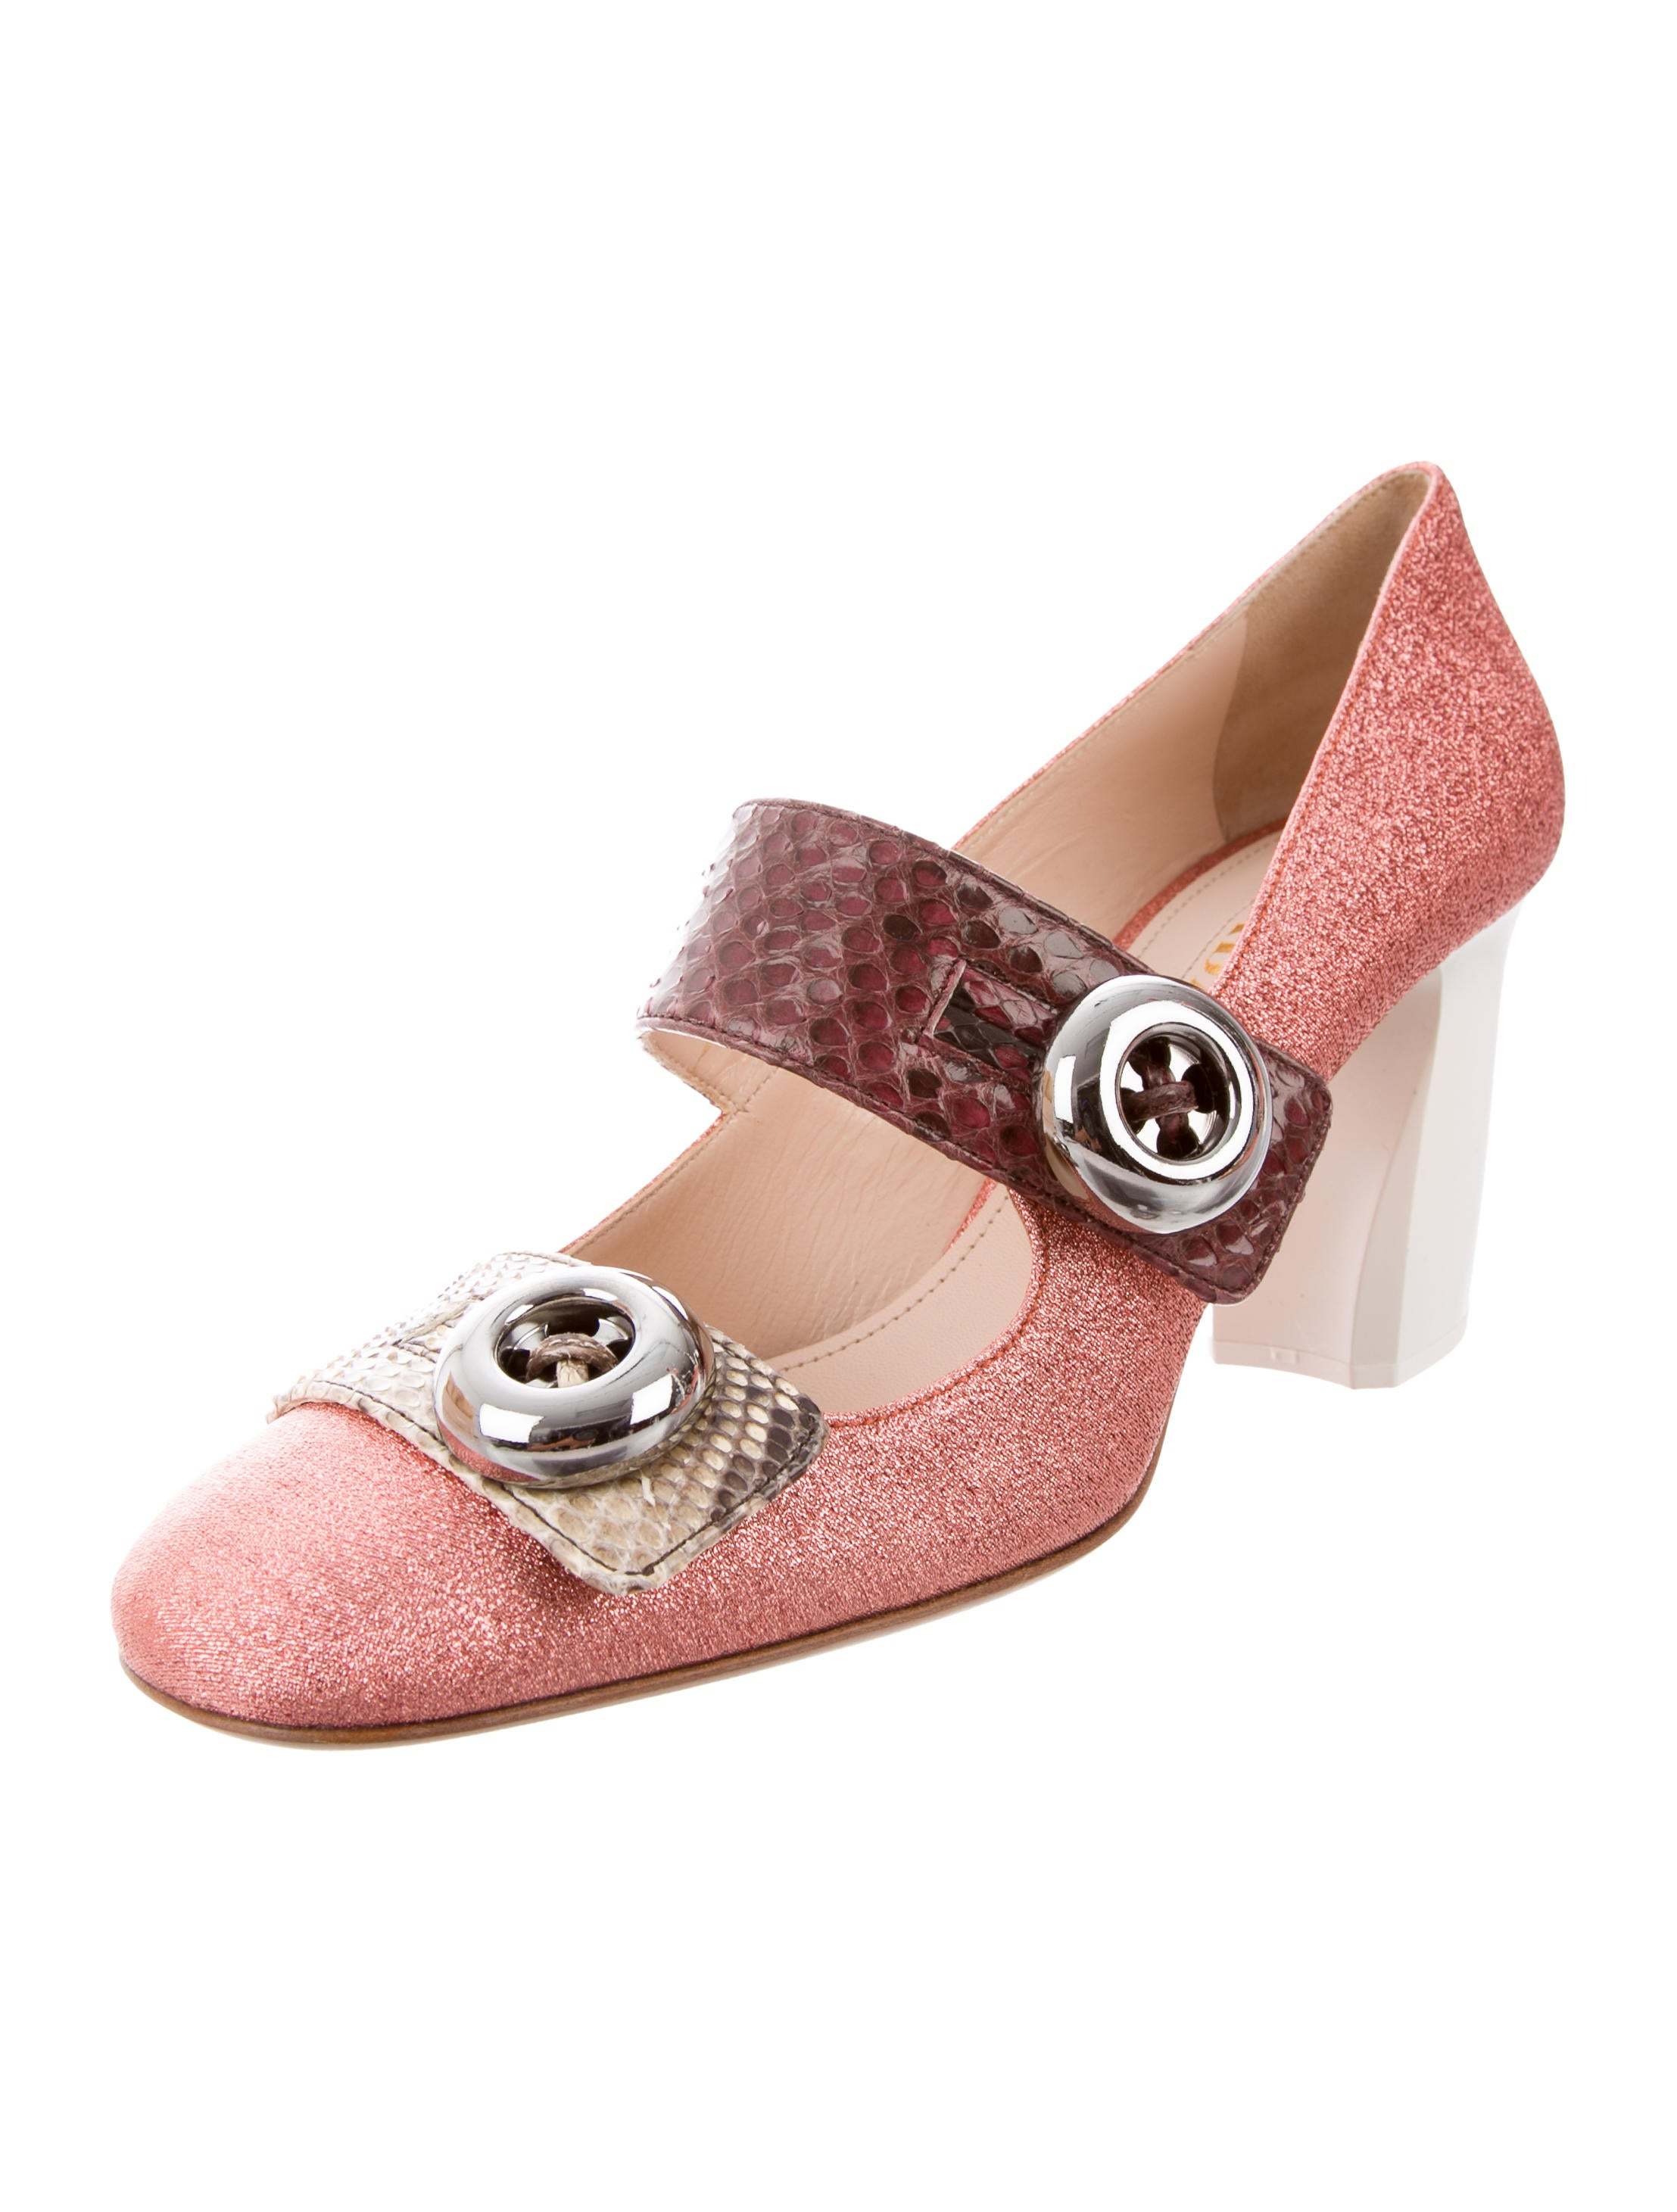 Prada Snakeskin-Trimmed Square-Toe Pumps w/ Tags eastbay free shipping limited edition cheap sale best Kt6JP